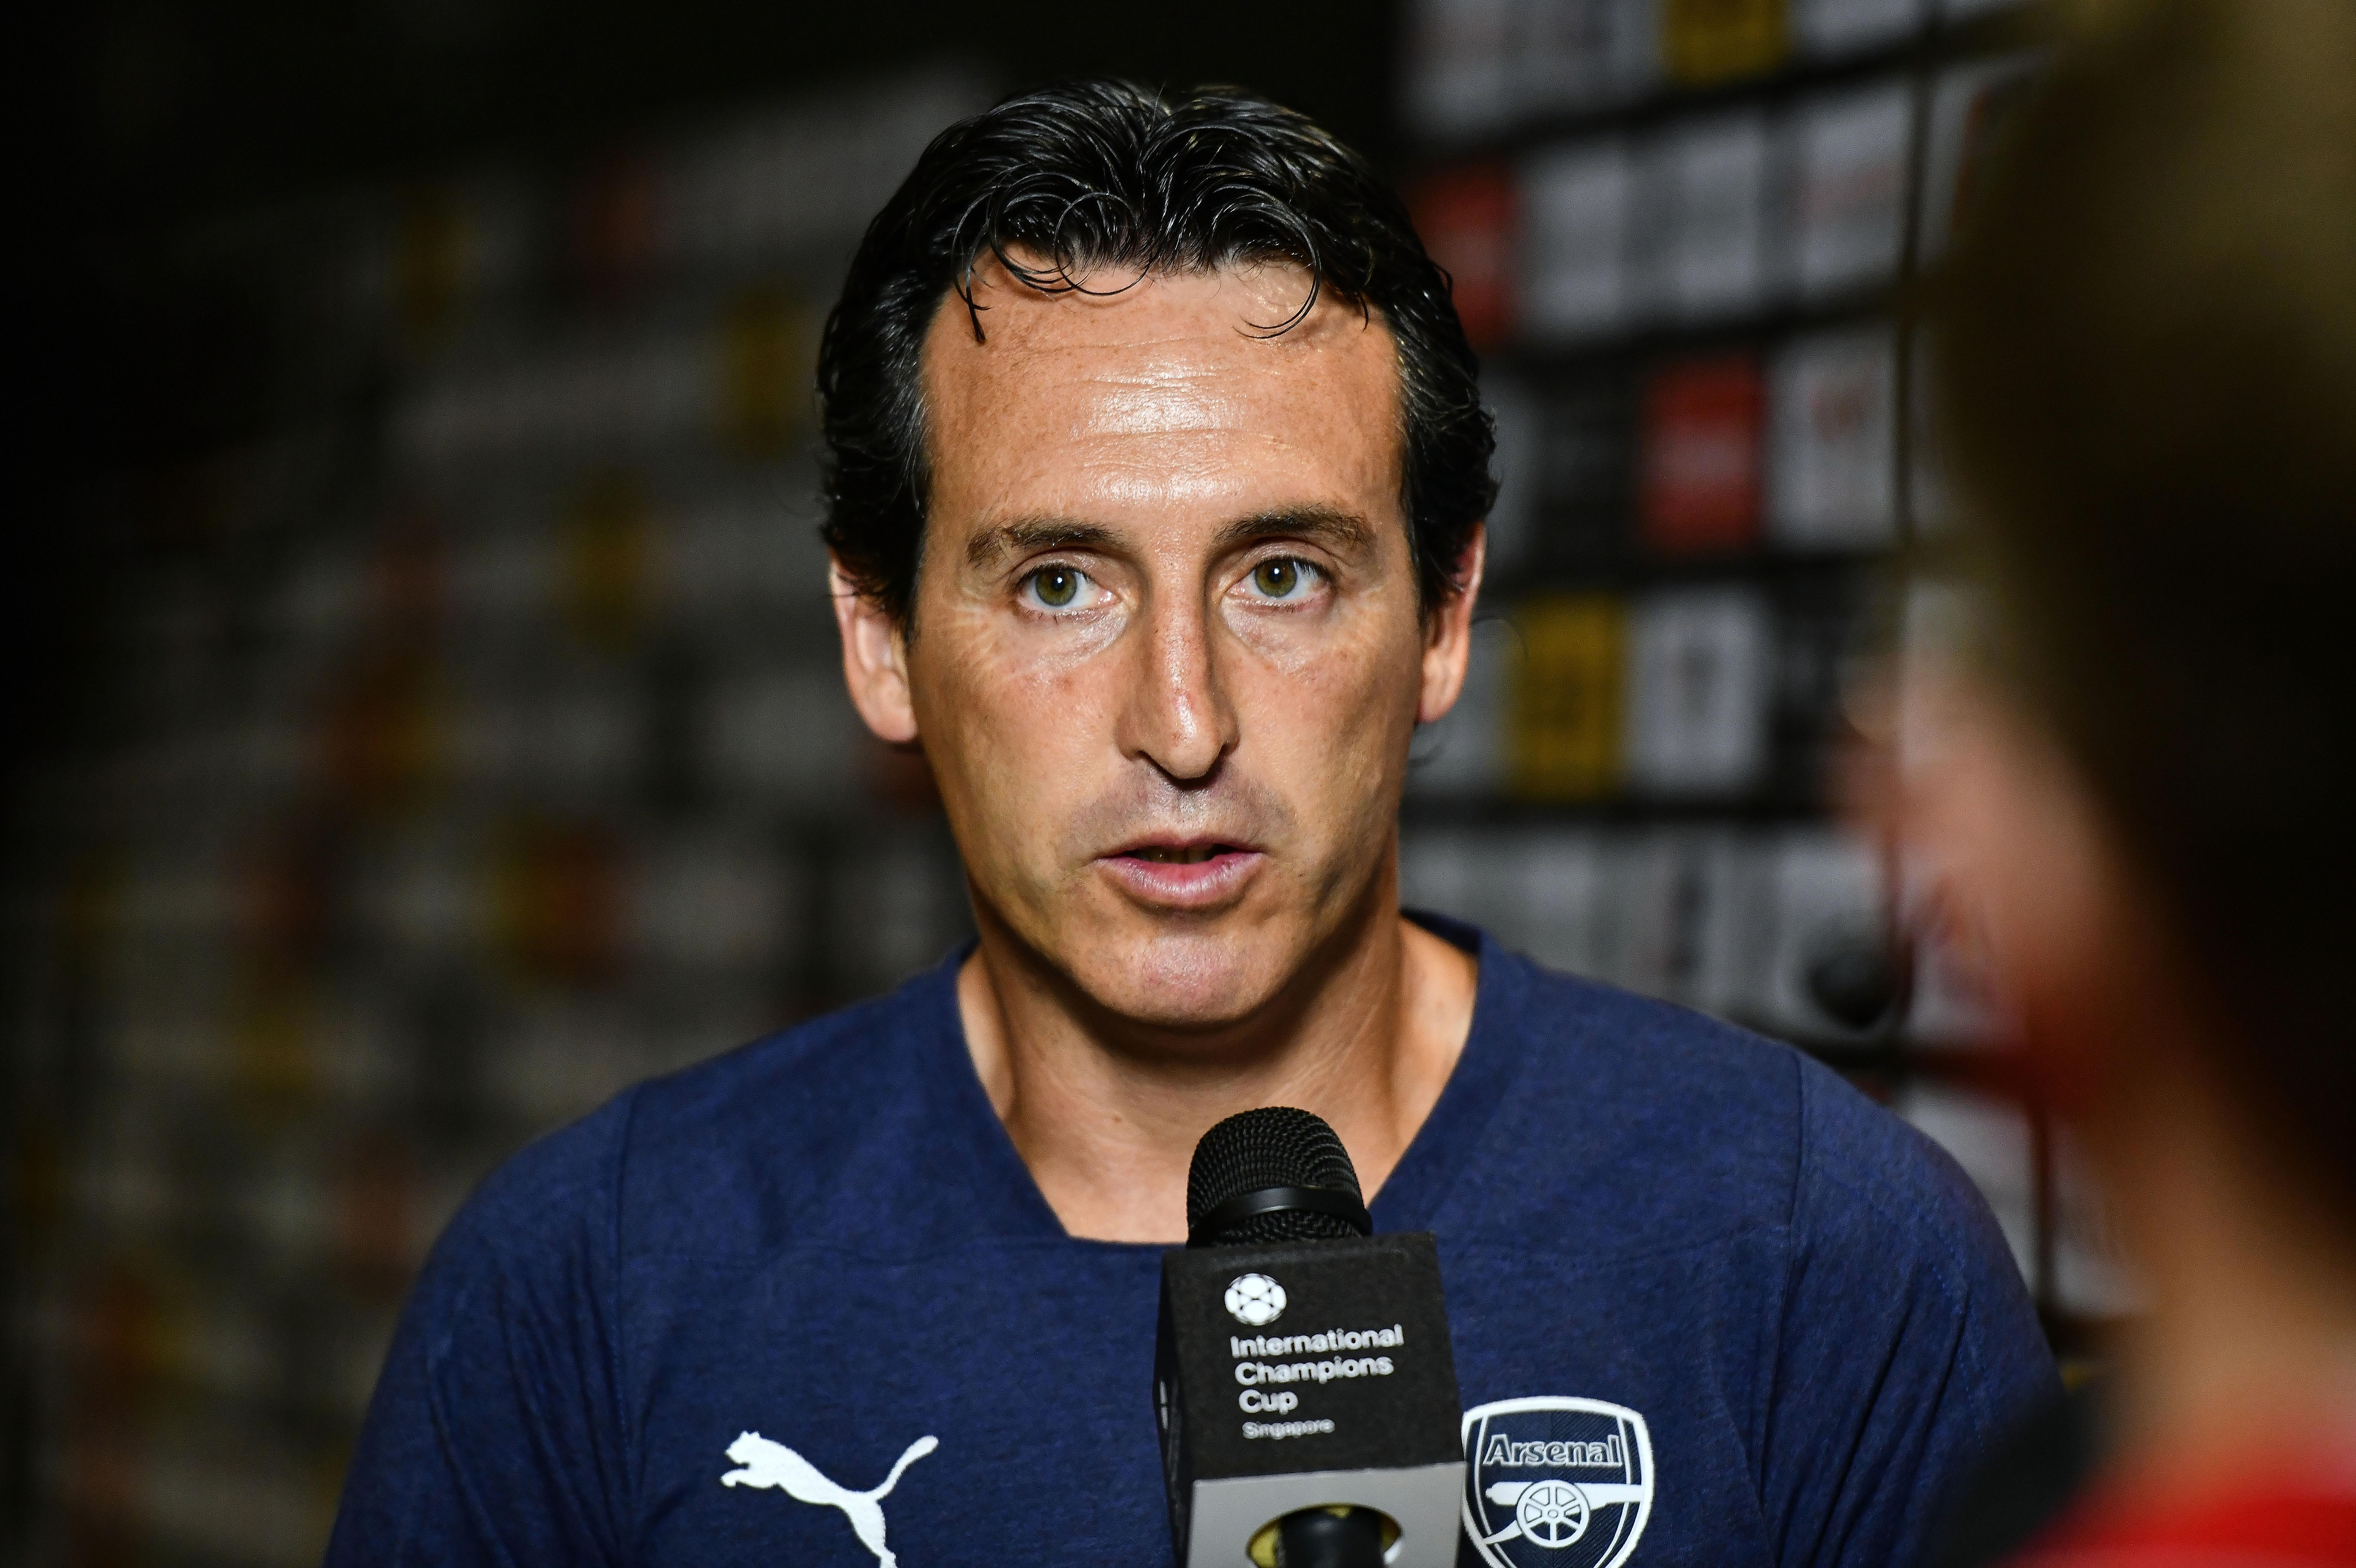 Arsenal are hoping Unai Emery can work wonders for them this season